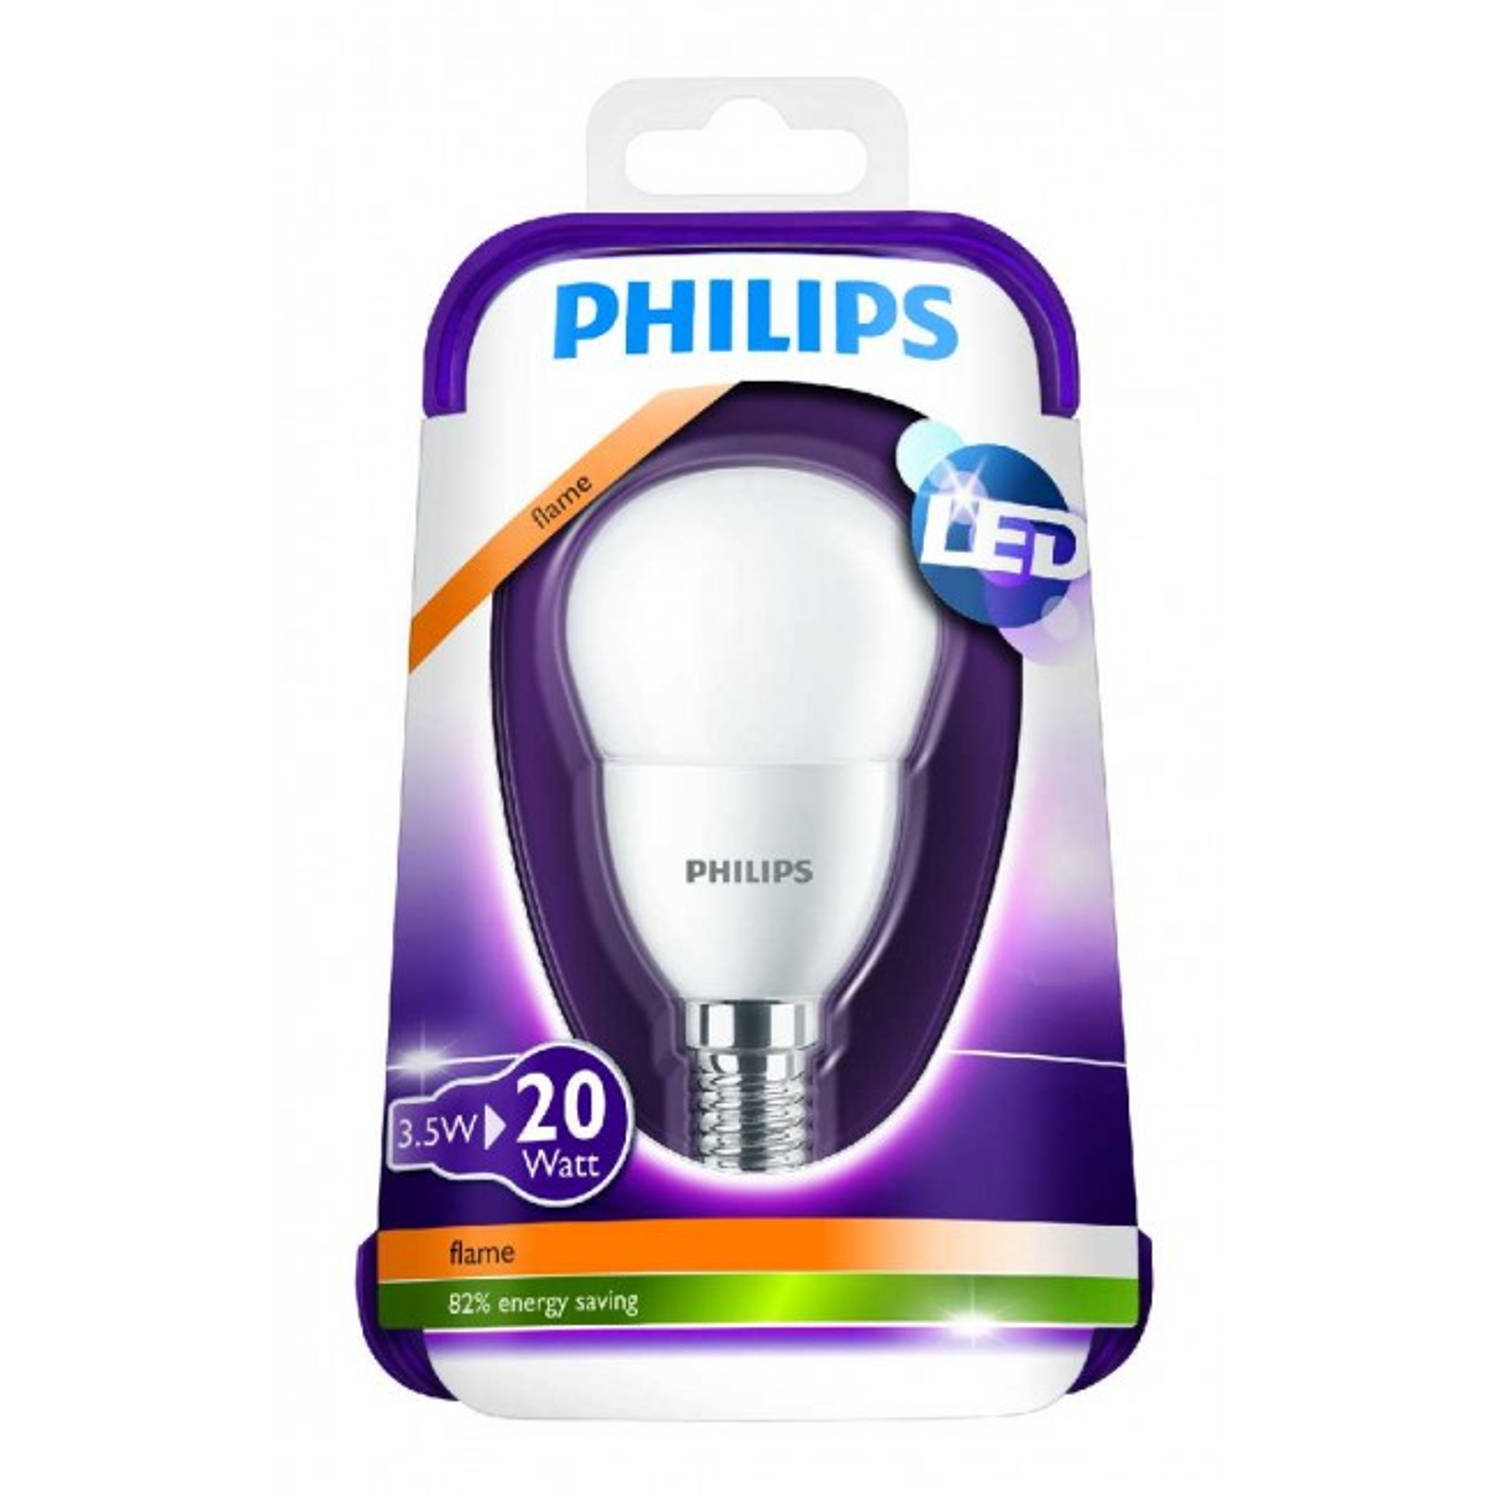 Philips Led kogellamp 3,5W E14 20W flame